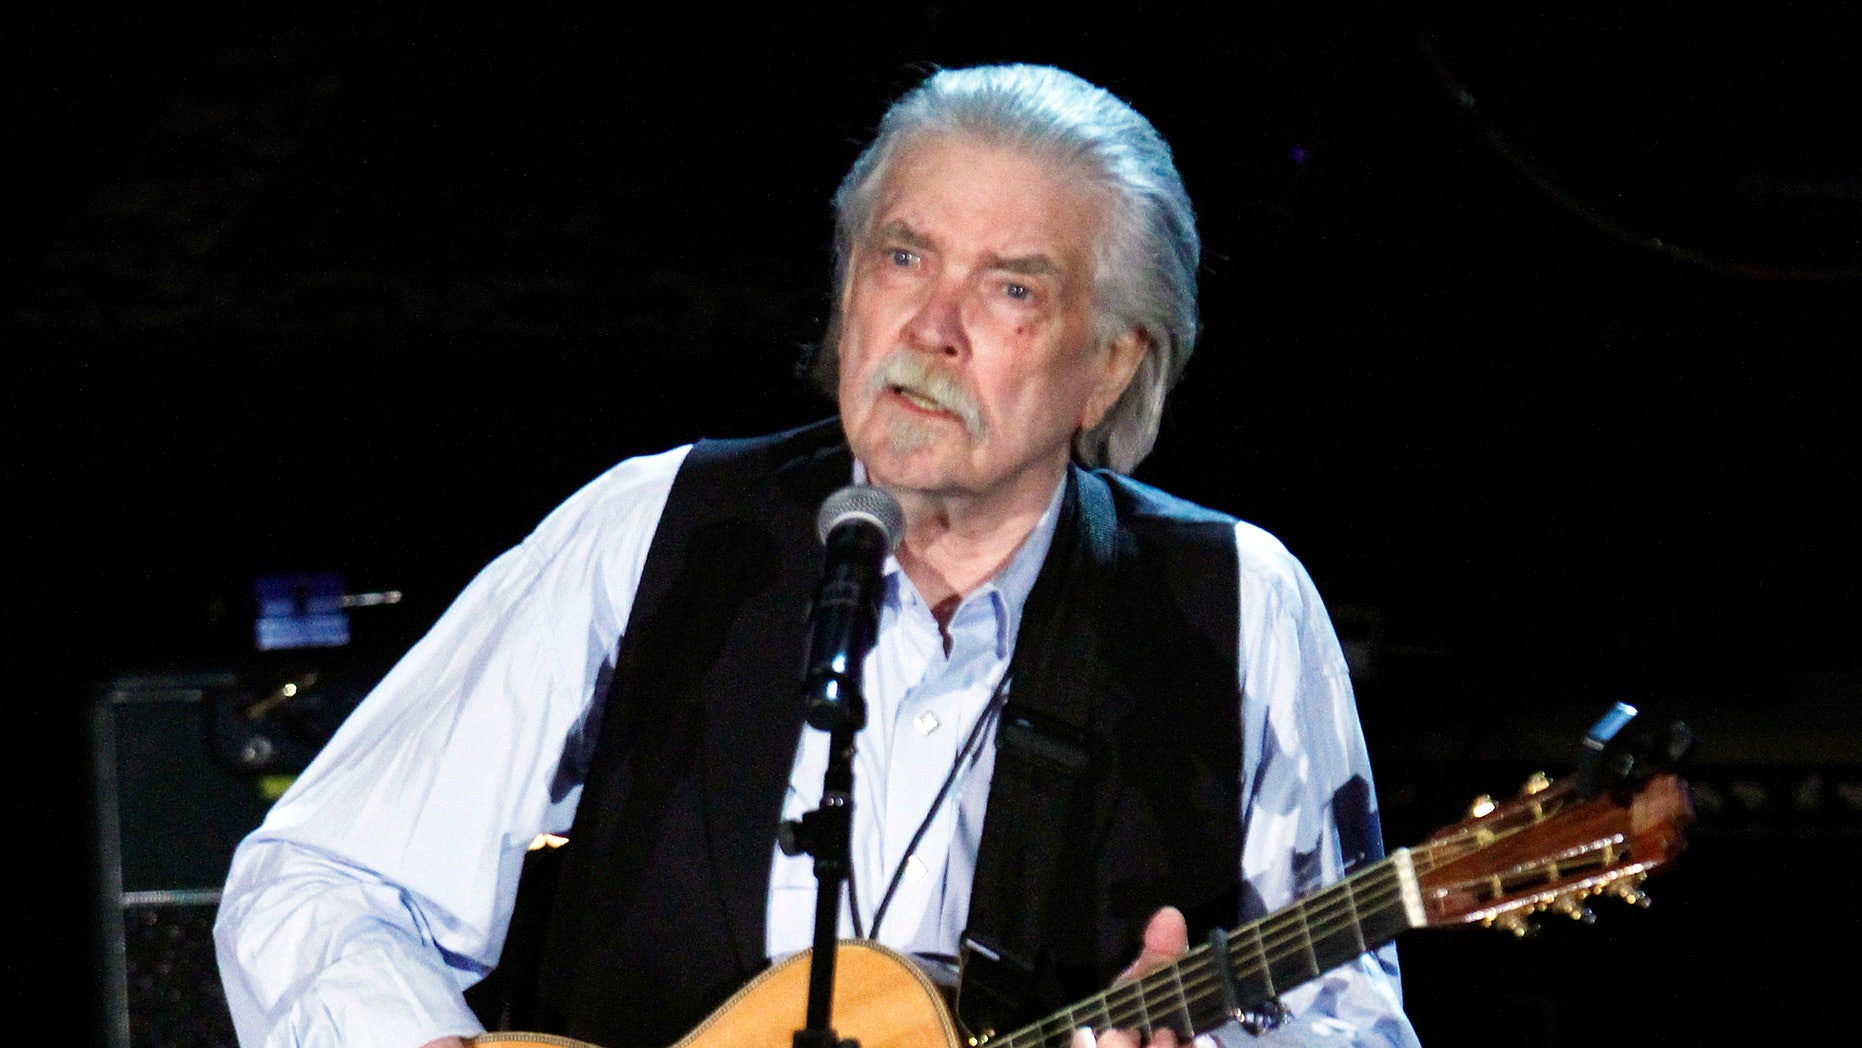 FILE - This Sept. 12, 2012 file photo shows Guy Clark at the 11th annual Americana Honors & Awards in Nashville, Tenn. Clark, died Tuesday, May 17, 2016, at his home in Nashville. He was 74 and had been in poor health, although his manager, Keith Case, did not give an official cause of death.  (Photo by Wade Payne/Invision/AP, File)